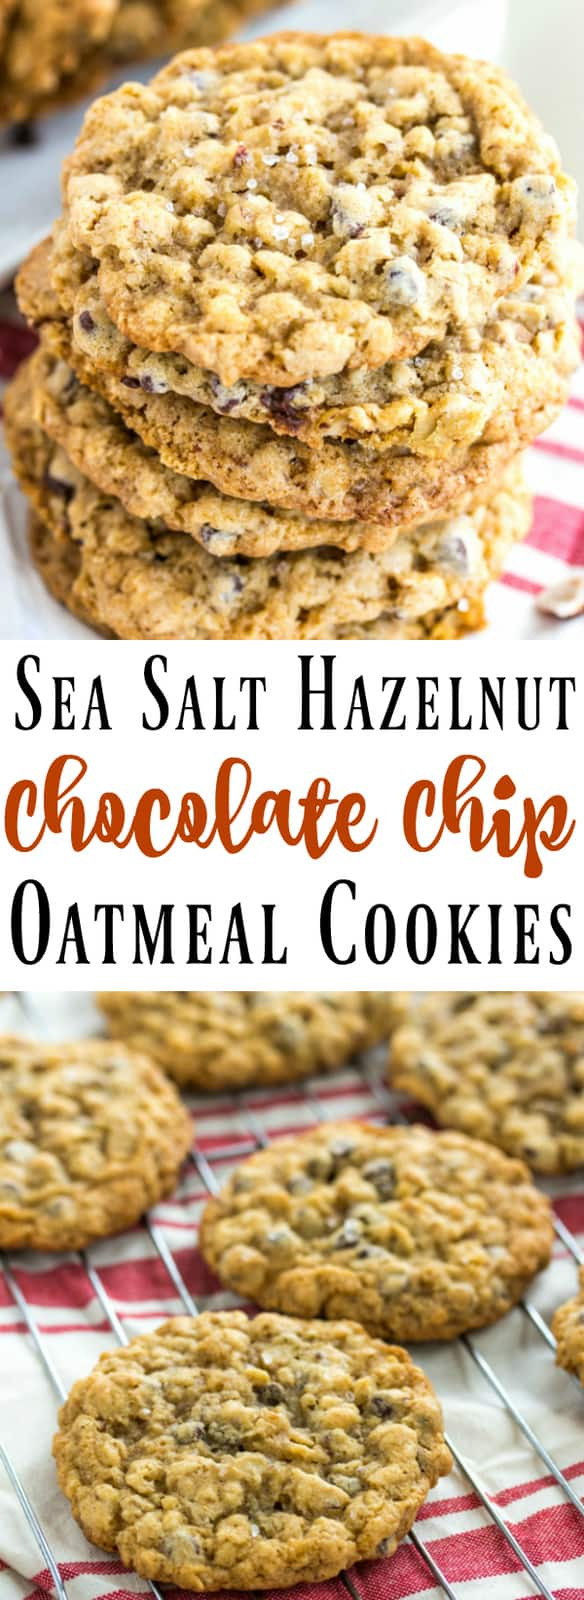 Sea Salt Hazelnut Chocolate Chip Oatmeal Cookies Collage with words  in middle